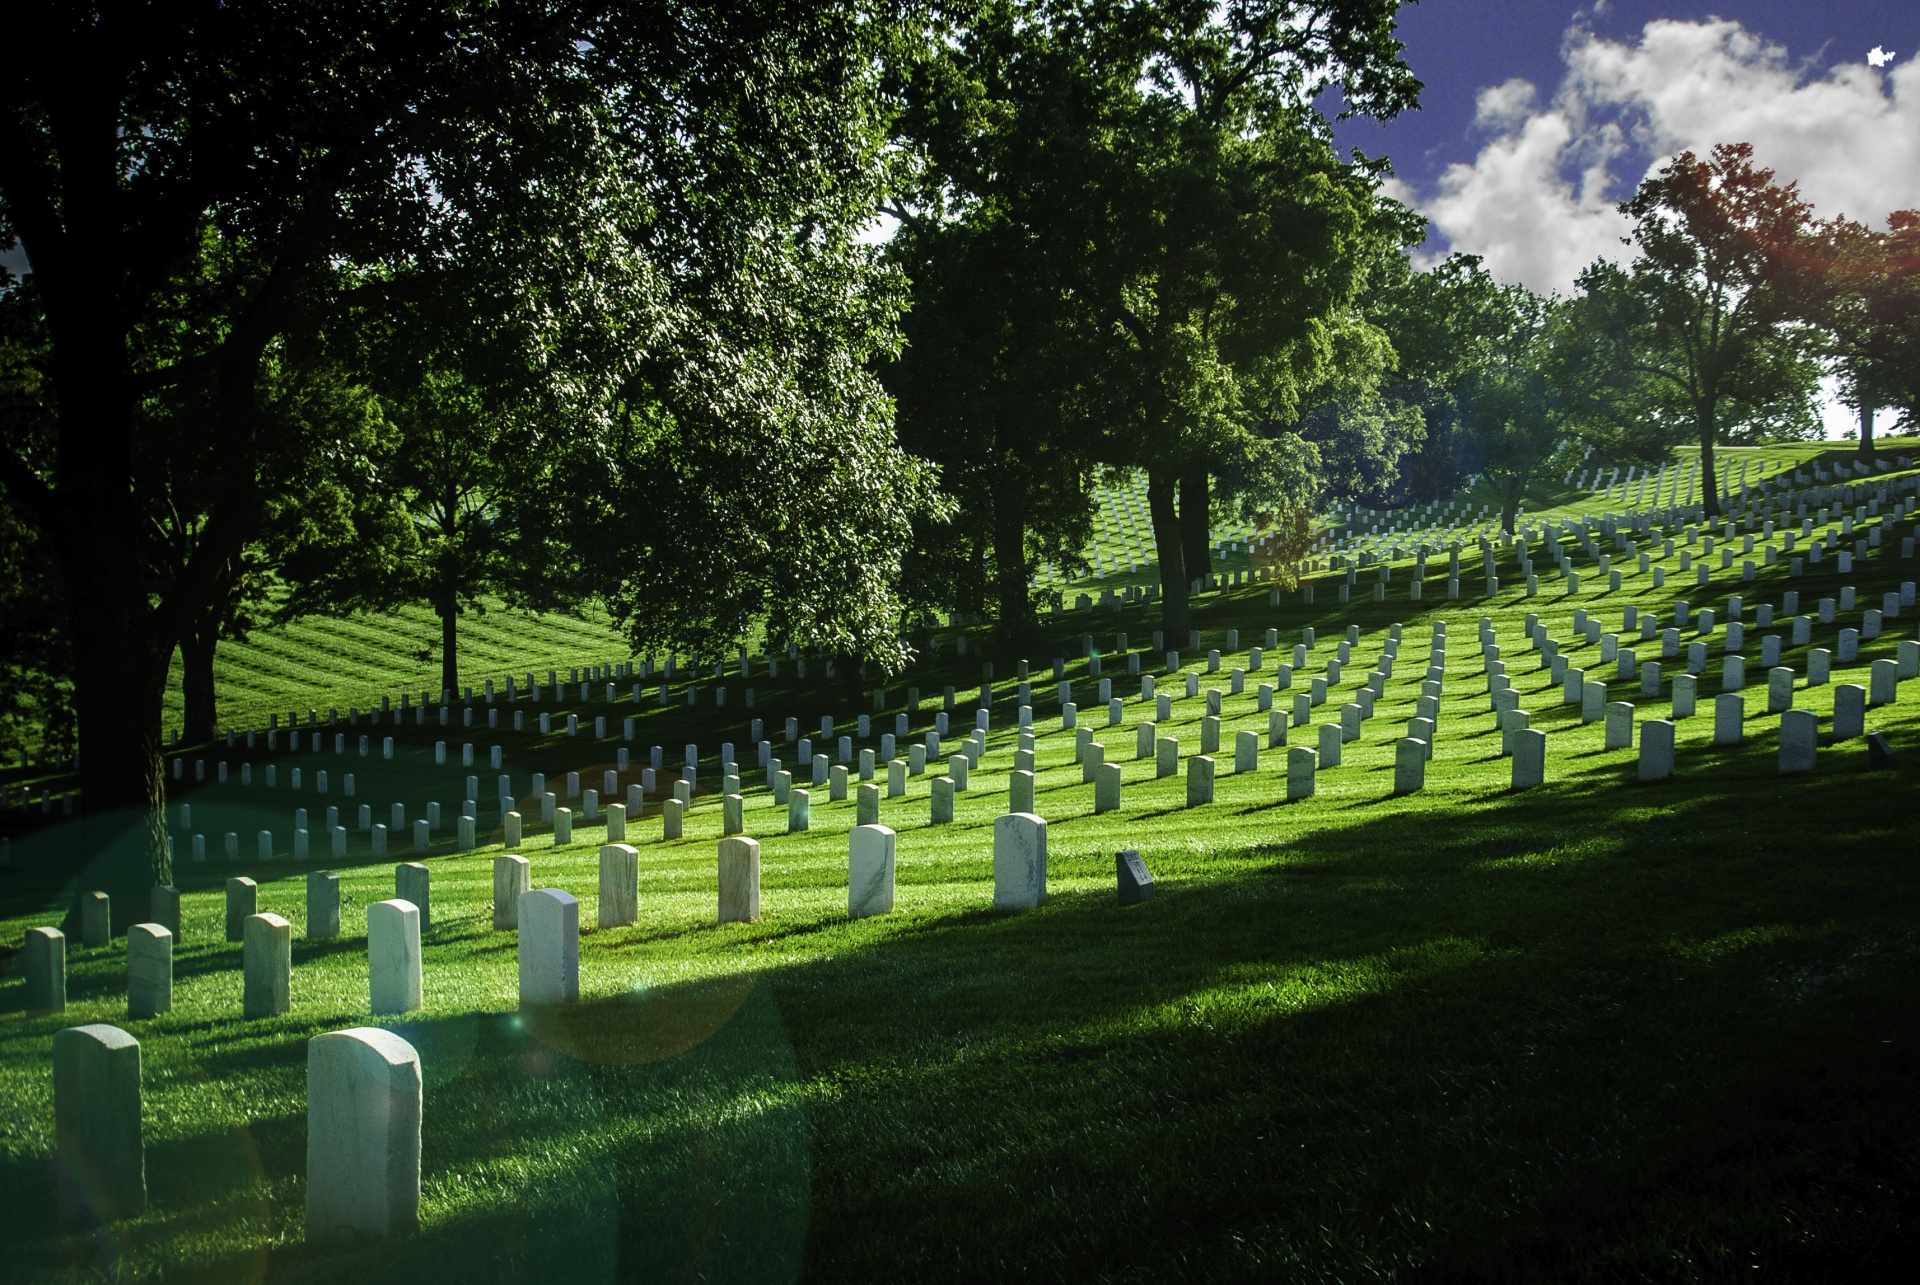 National Cemetery at Leavenworth, Kansas.